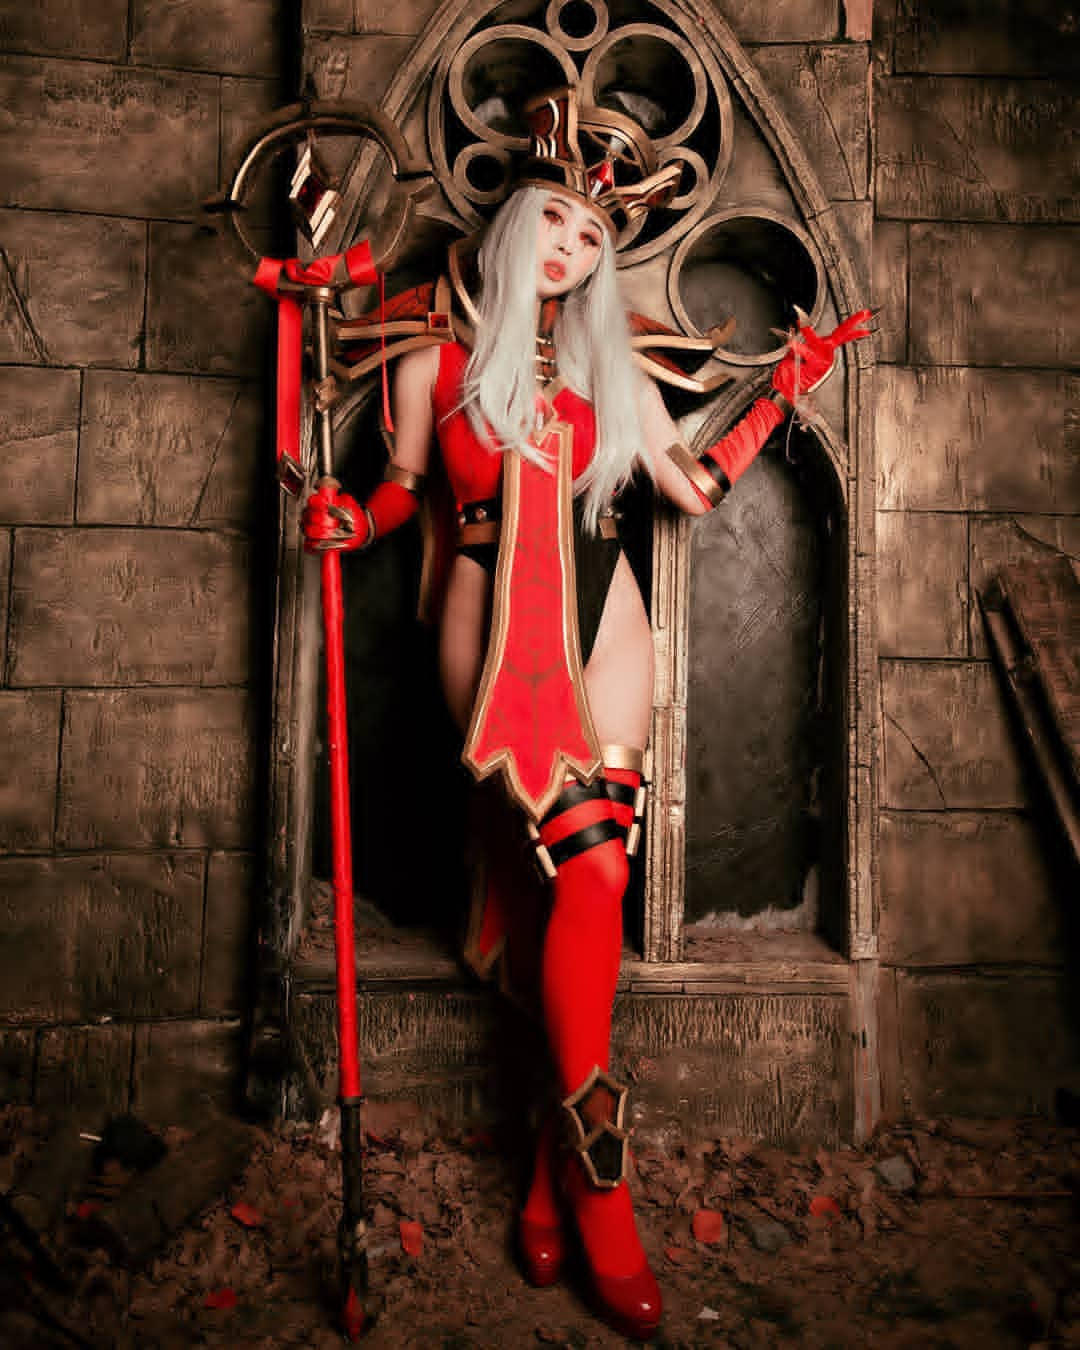 sally whitemane so sad